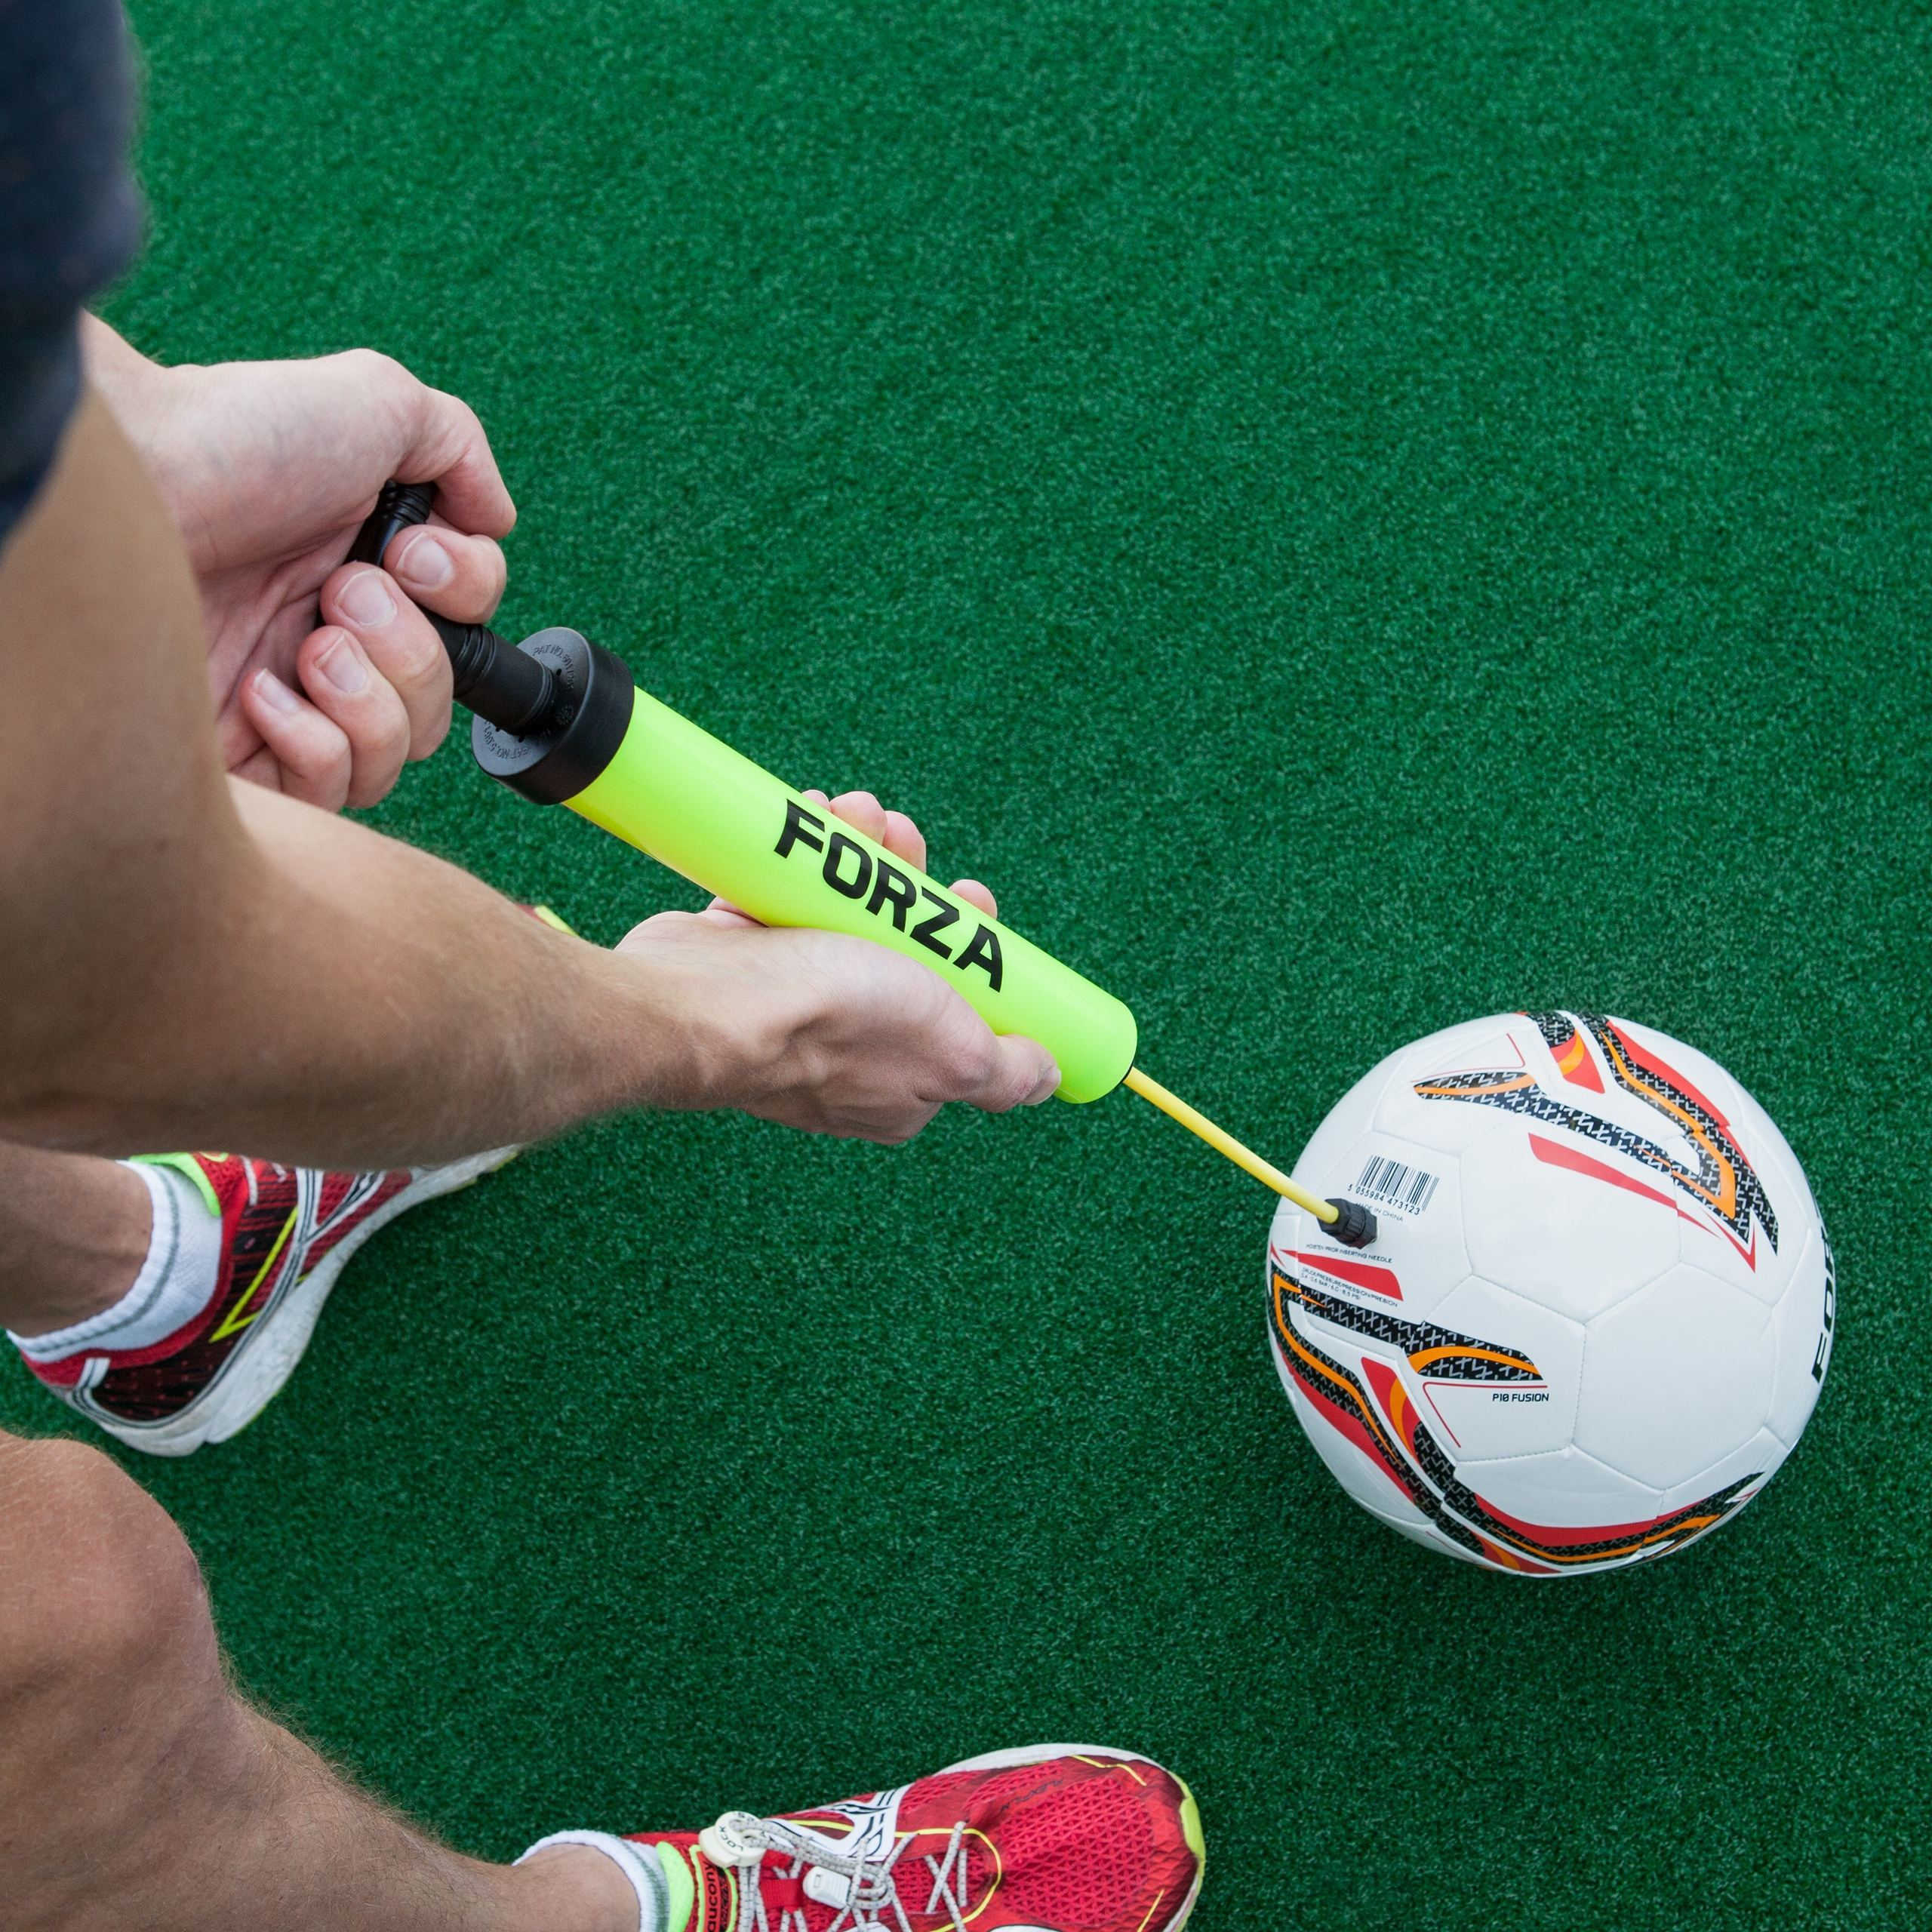 FORZA Soccer Ball Pump Extendable Nozzle | How To Inflate A Soccer Ball Quickly